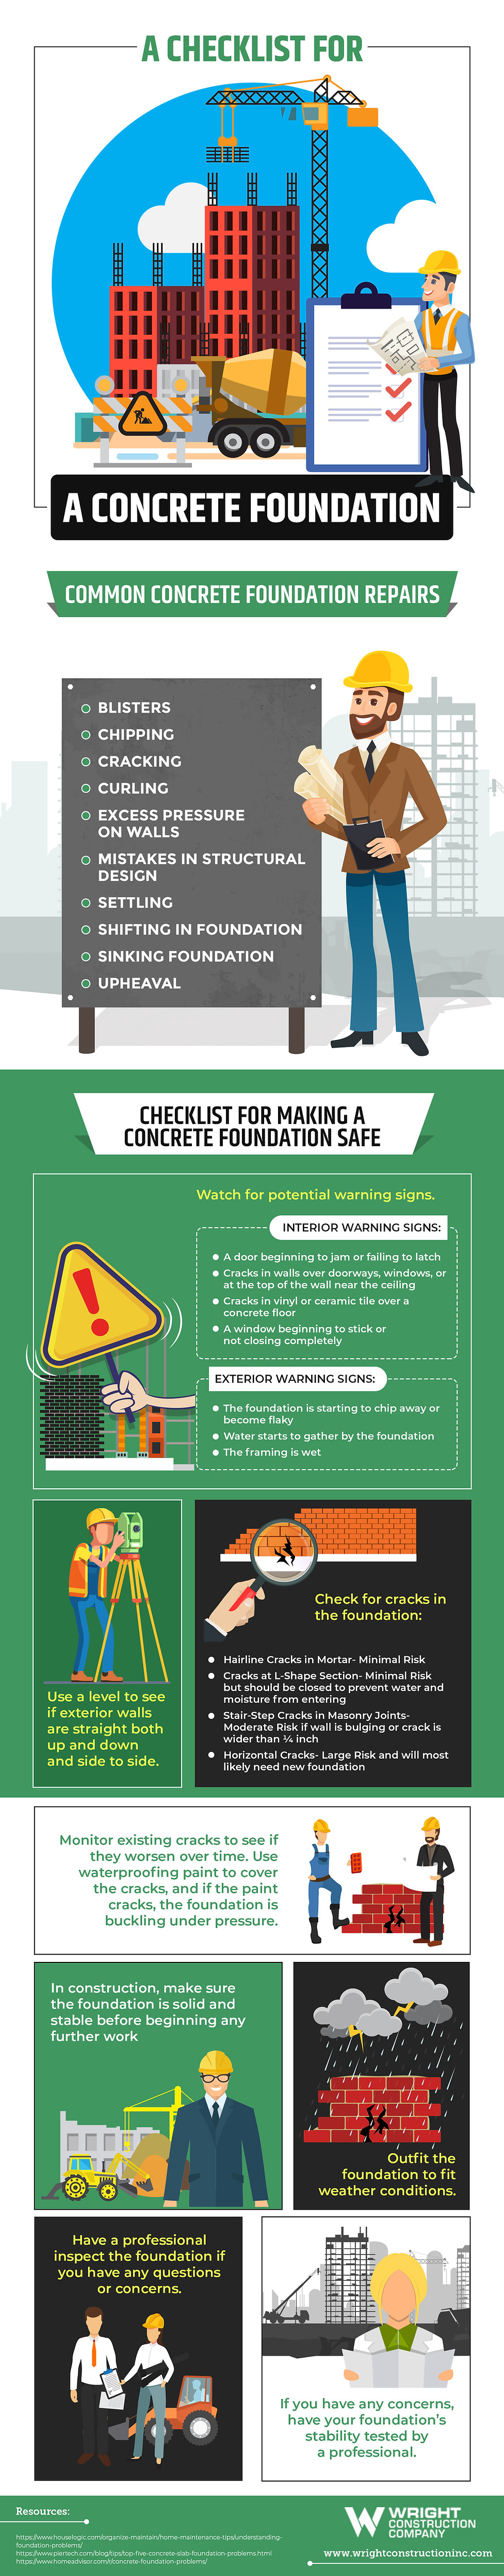 A-Checklist-for-a-Concrete-Foundation.jp